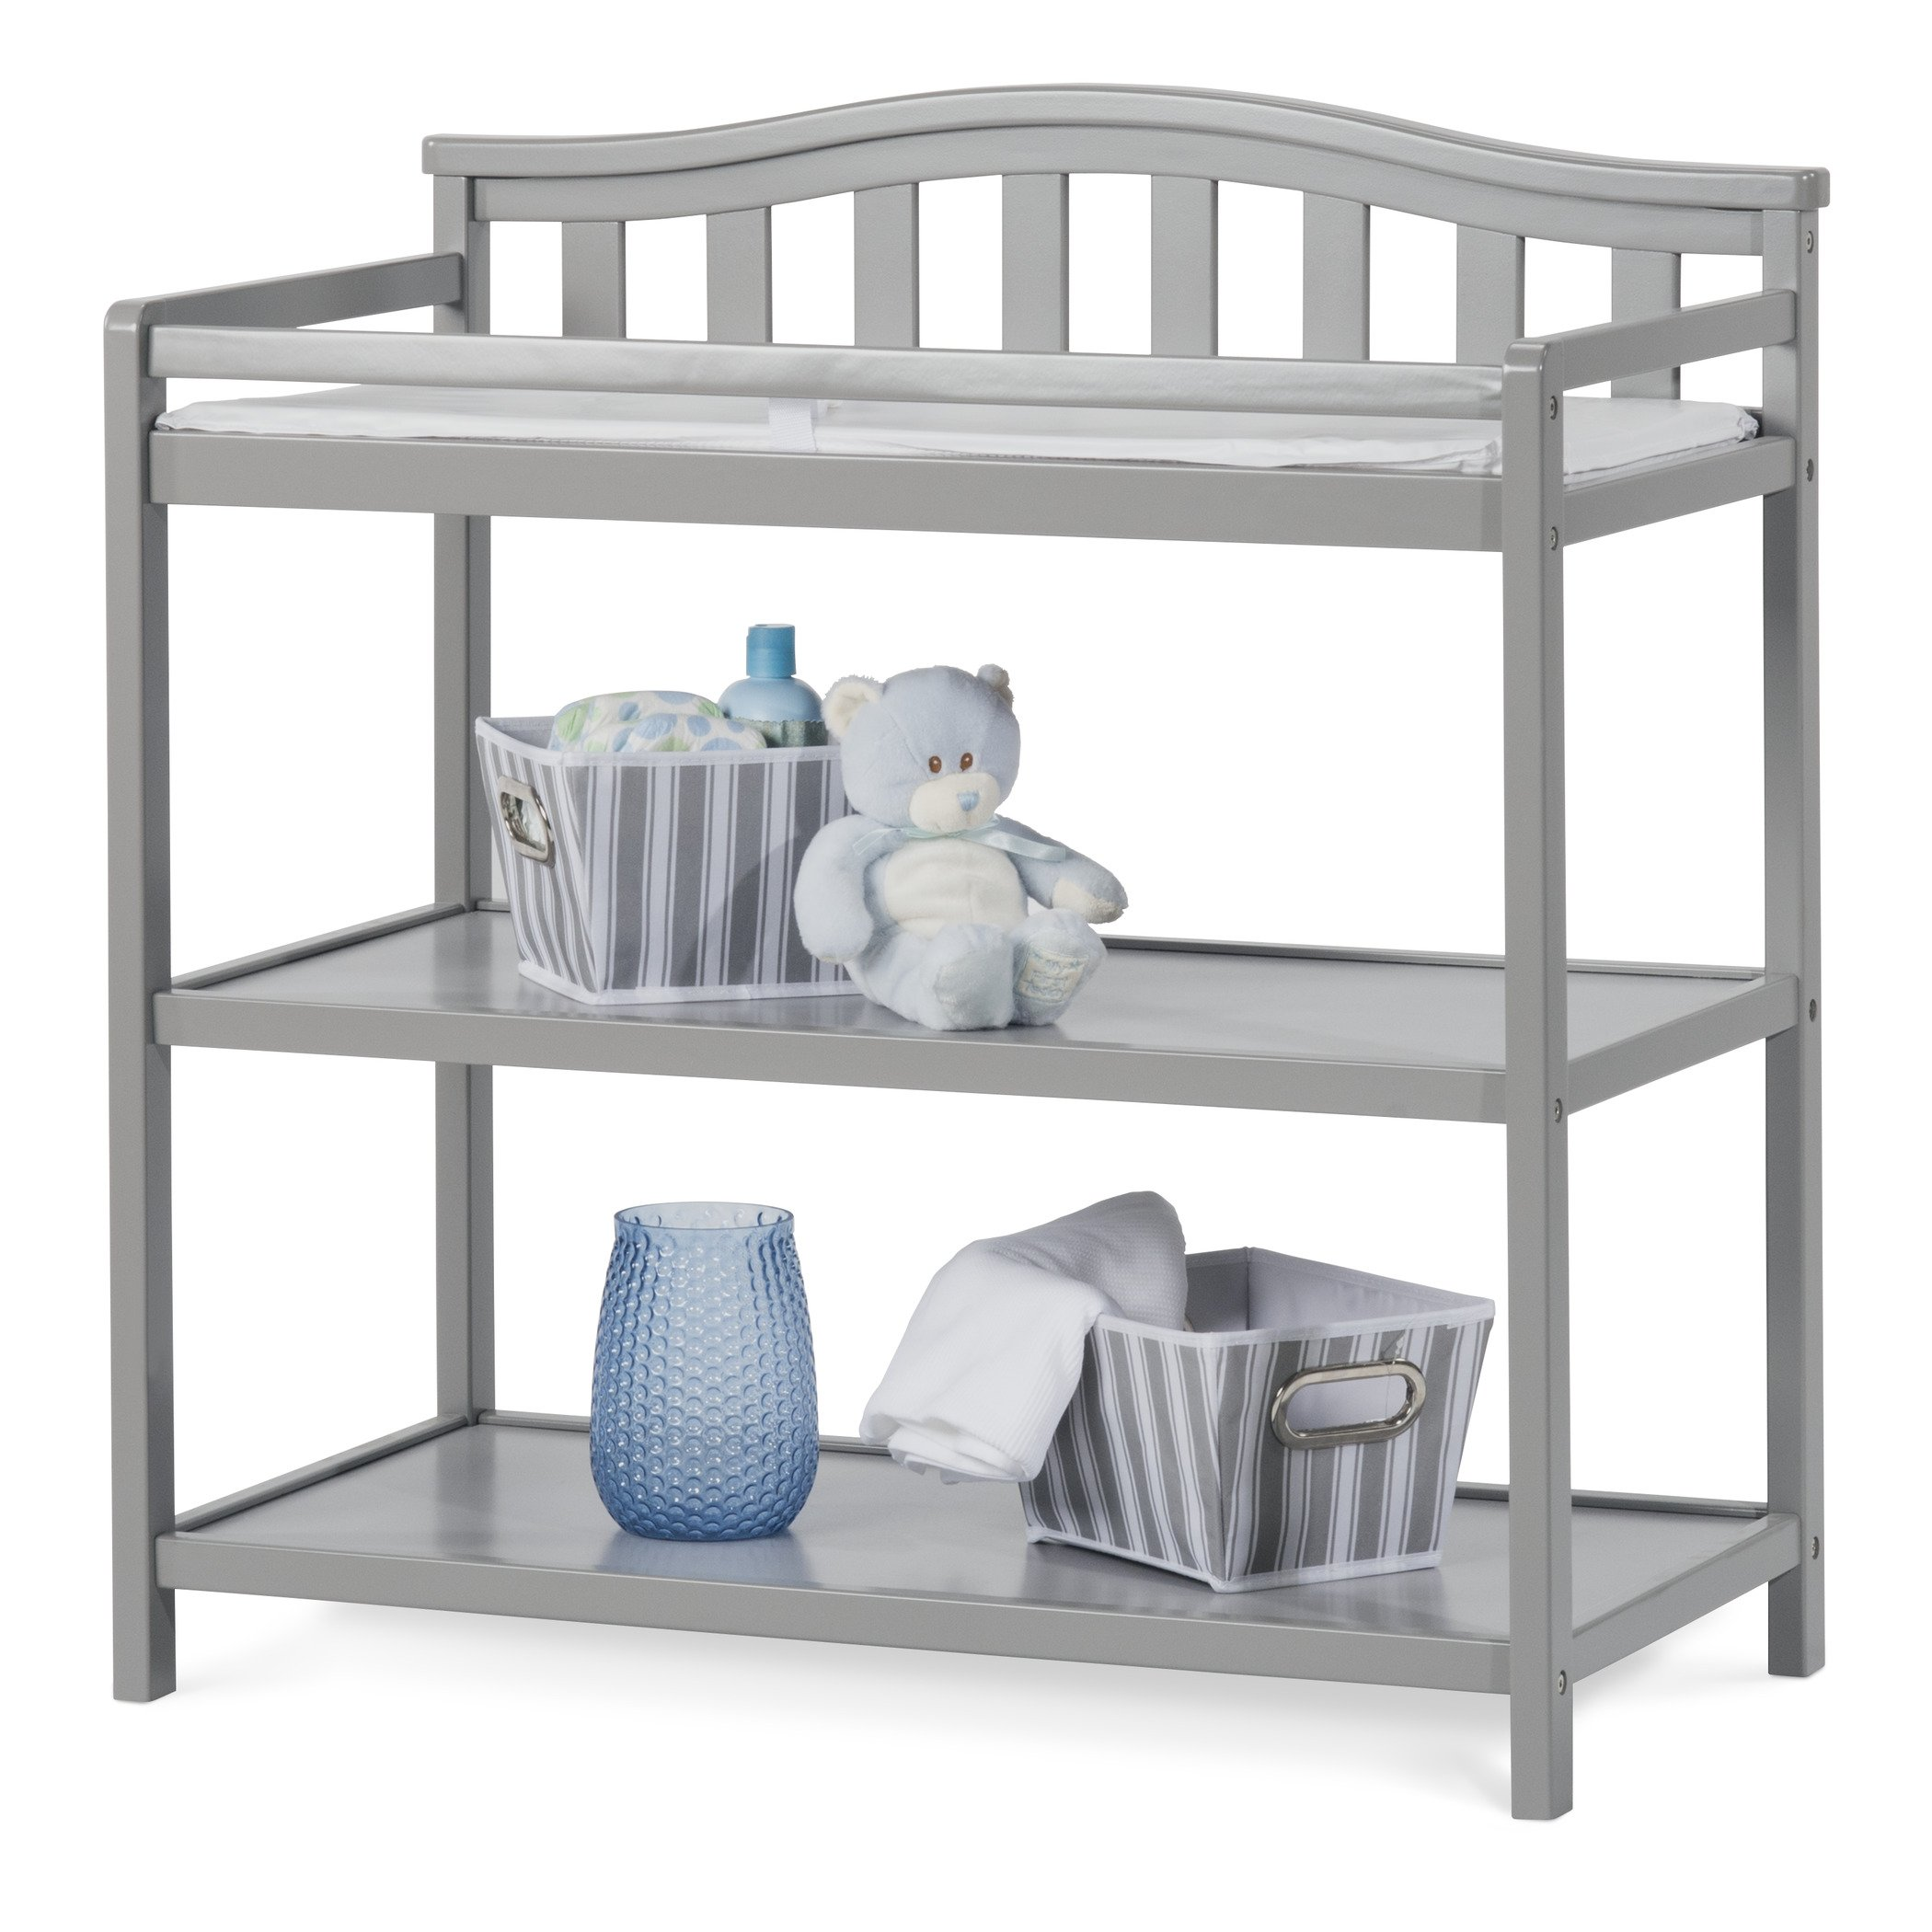 Child Craft Arched Top Changing Table with Pad, Cool Gray by Child Craft (Image #2)